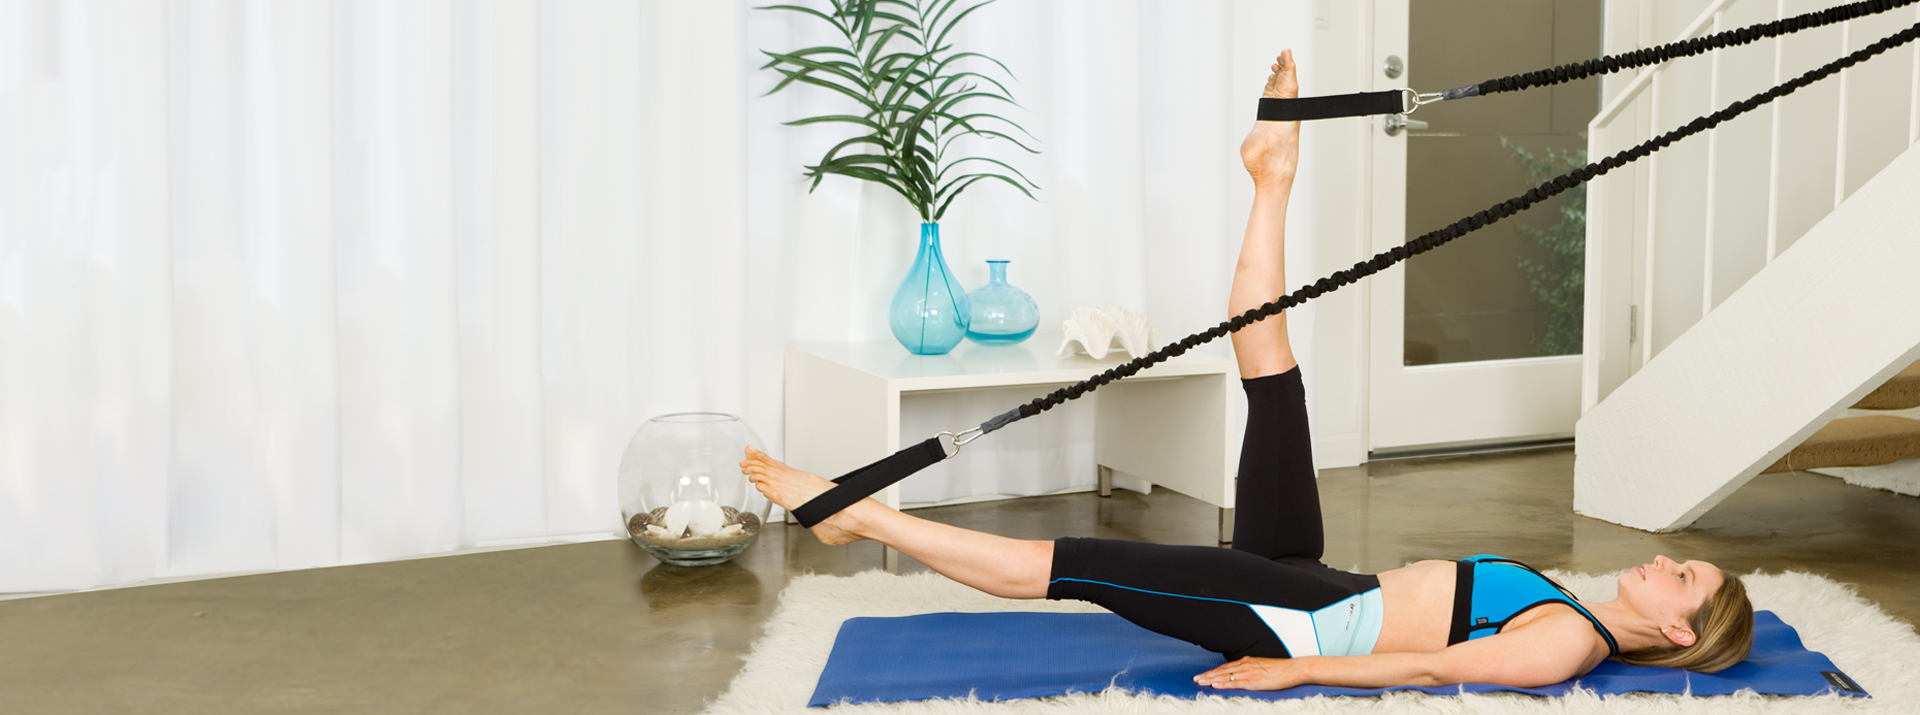 Pilates Equipment